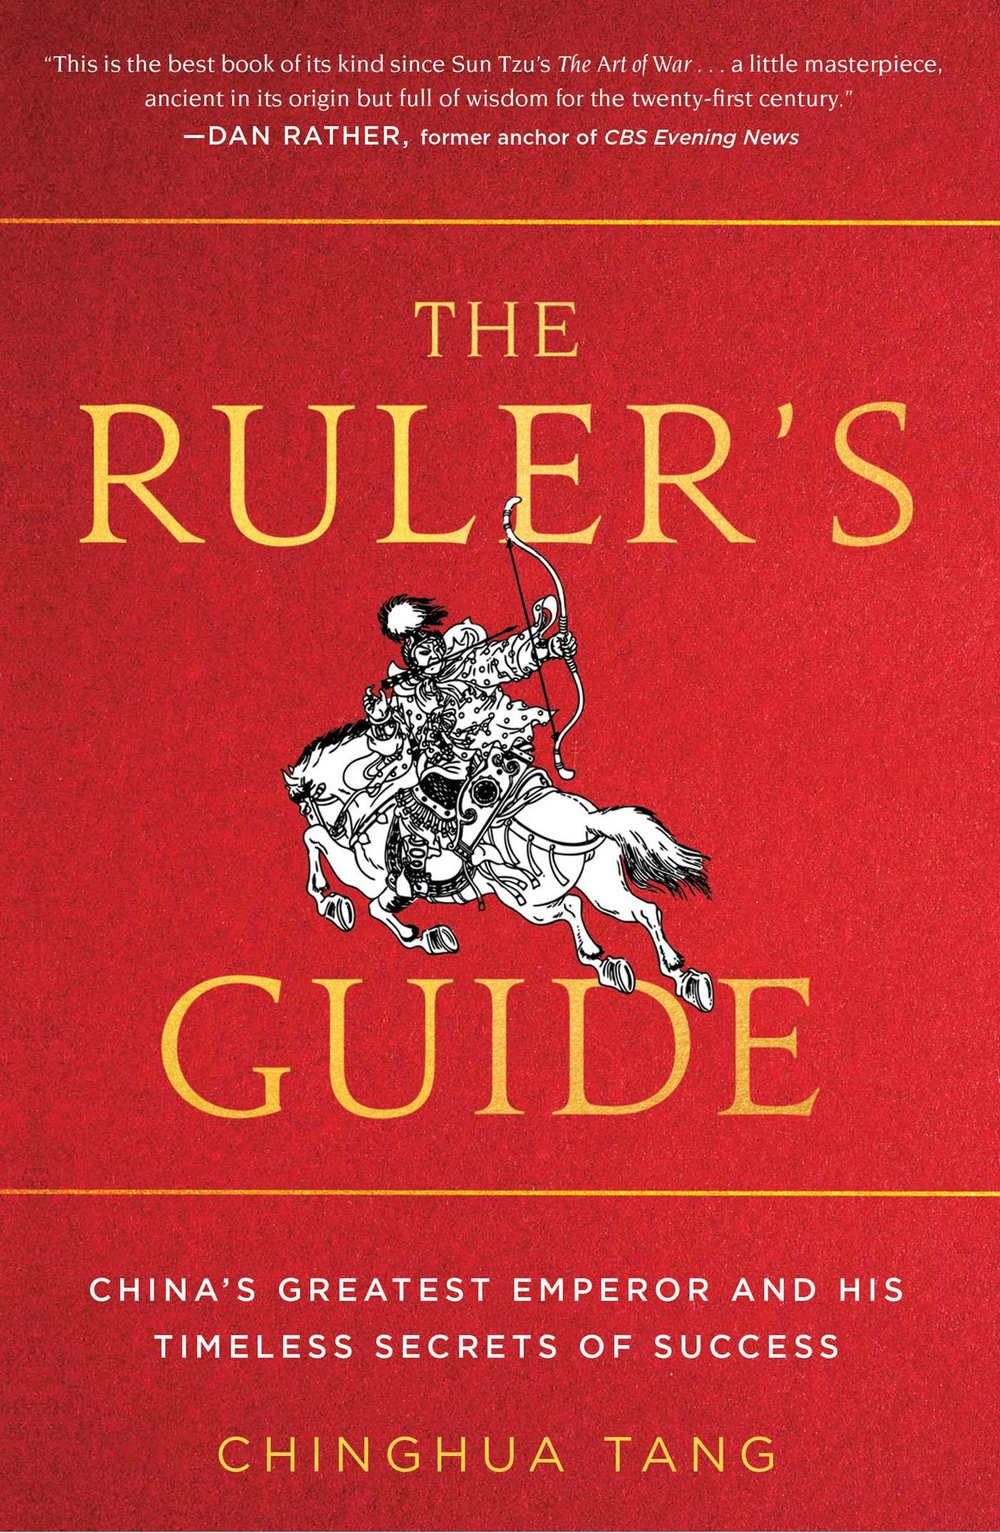 the rulers guide.jpg